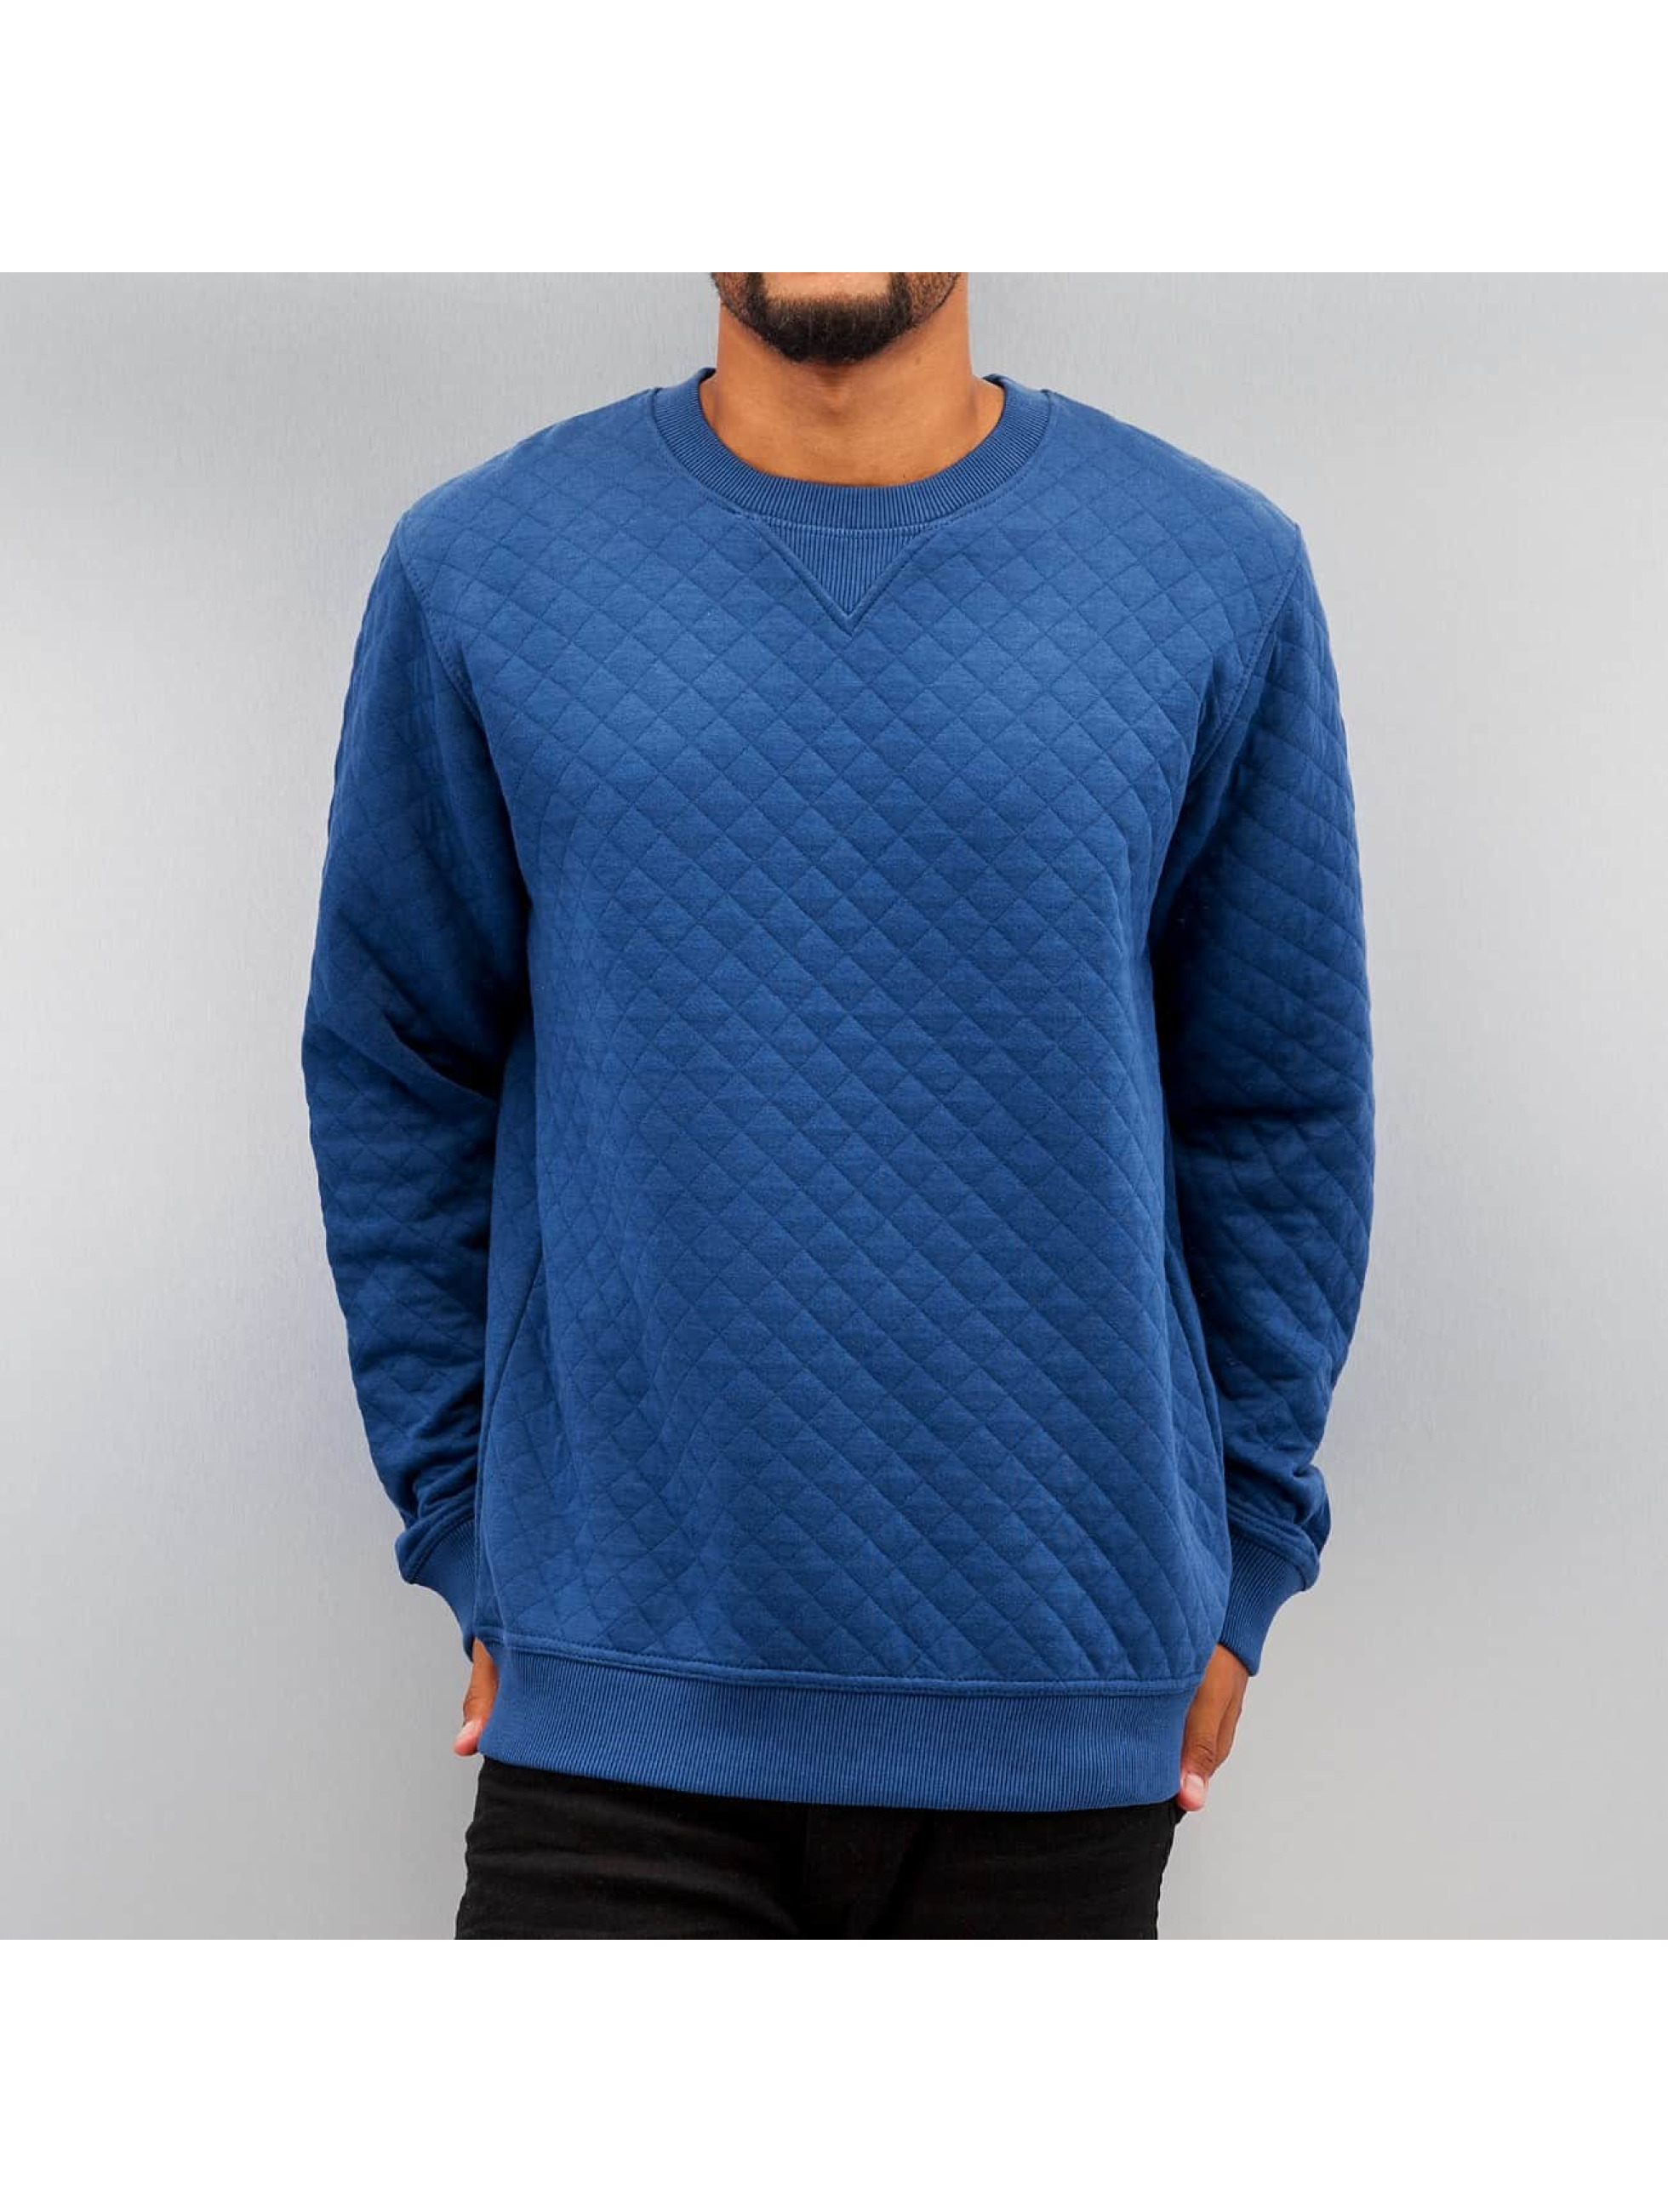 Cazzy Clang / Jumper Honeycomb in blue M